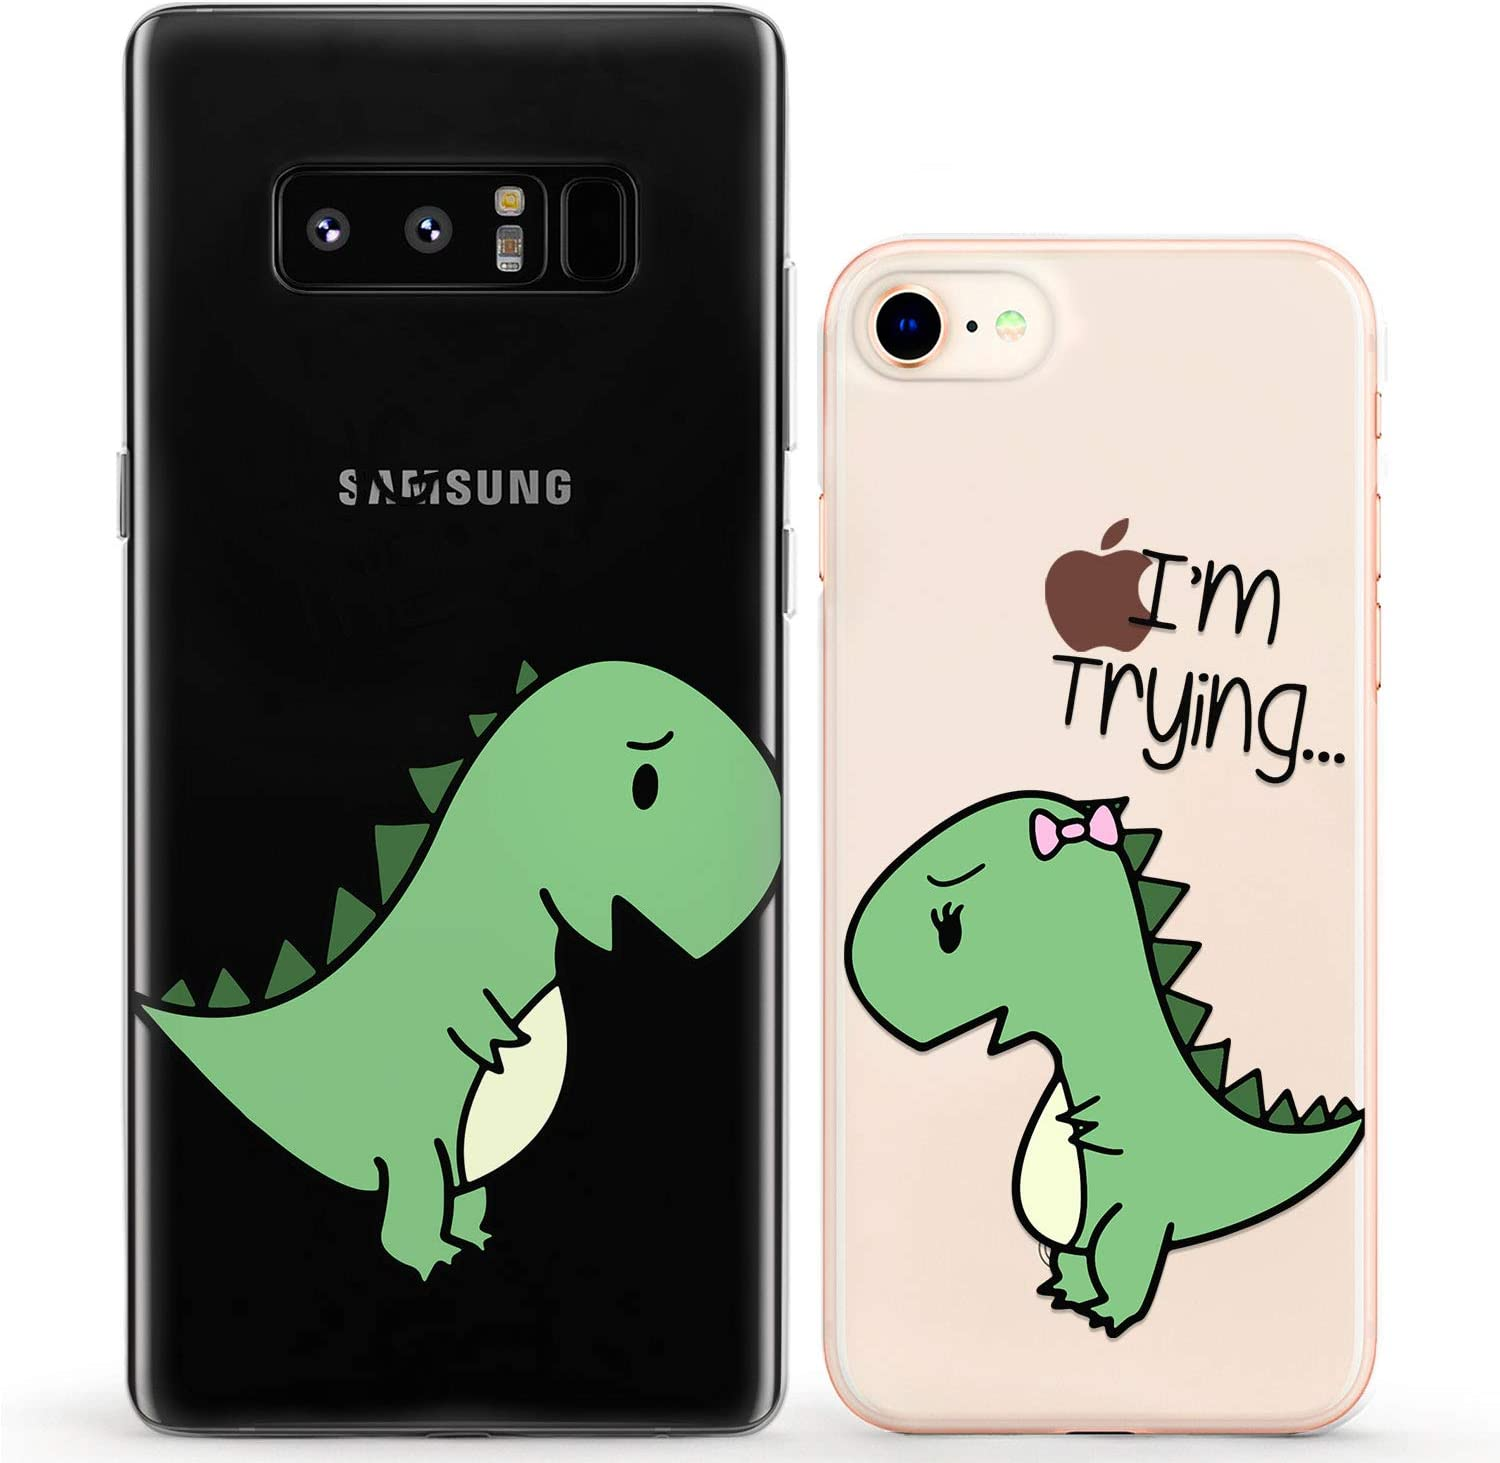 Hug Me! Dino Love! Suitable for Any Mobile Phone Three in One Data Line